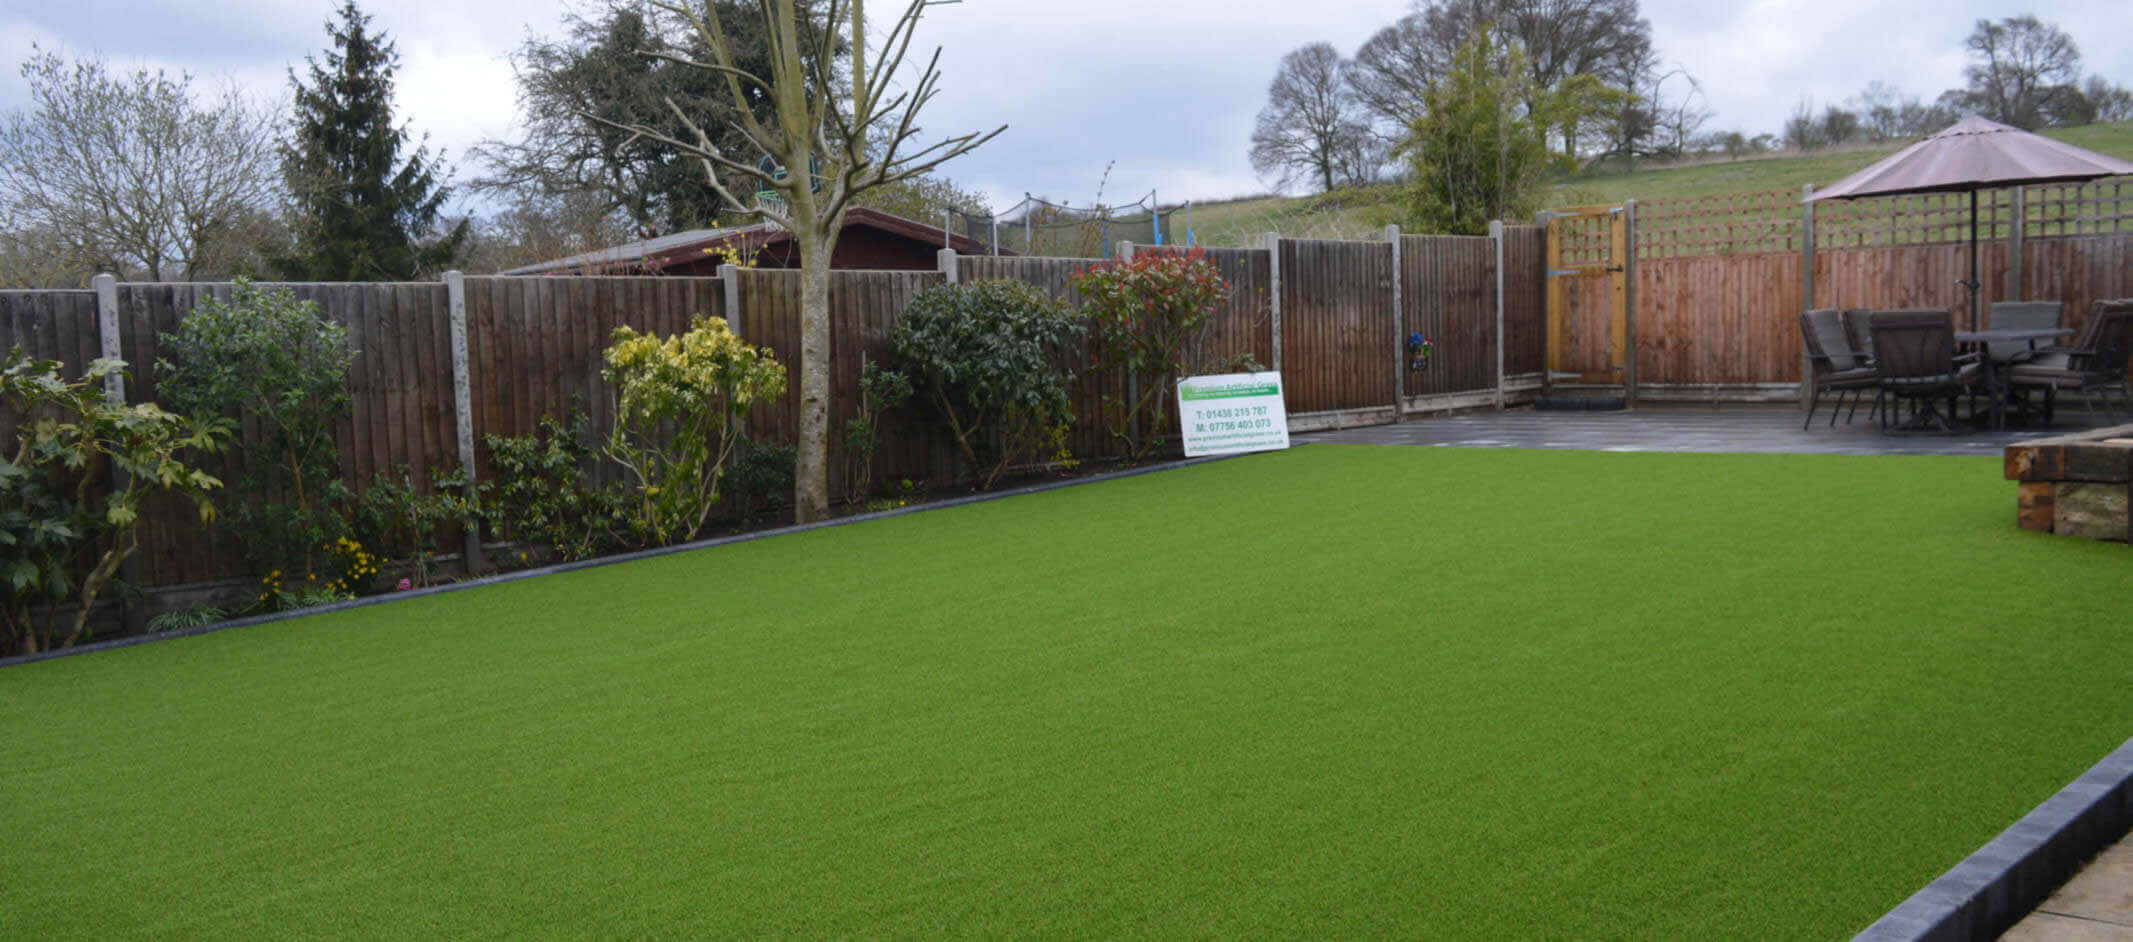 Artificial grass in Hertfordshire - Premium Artificial Grass